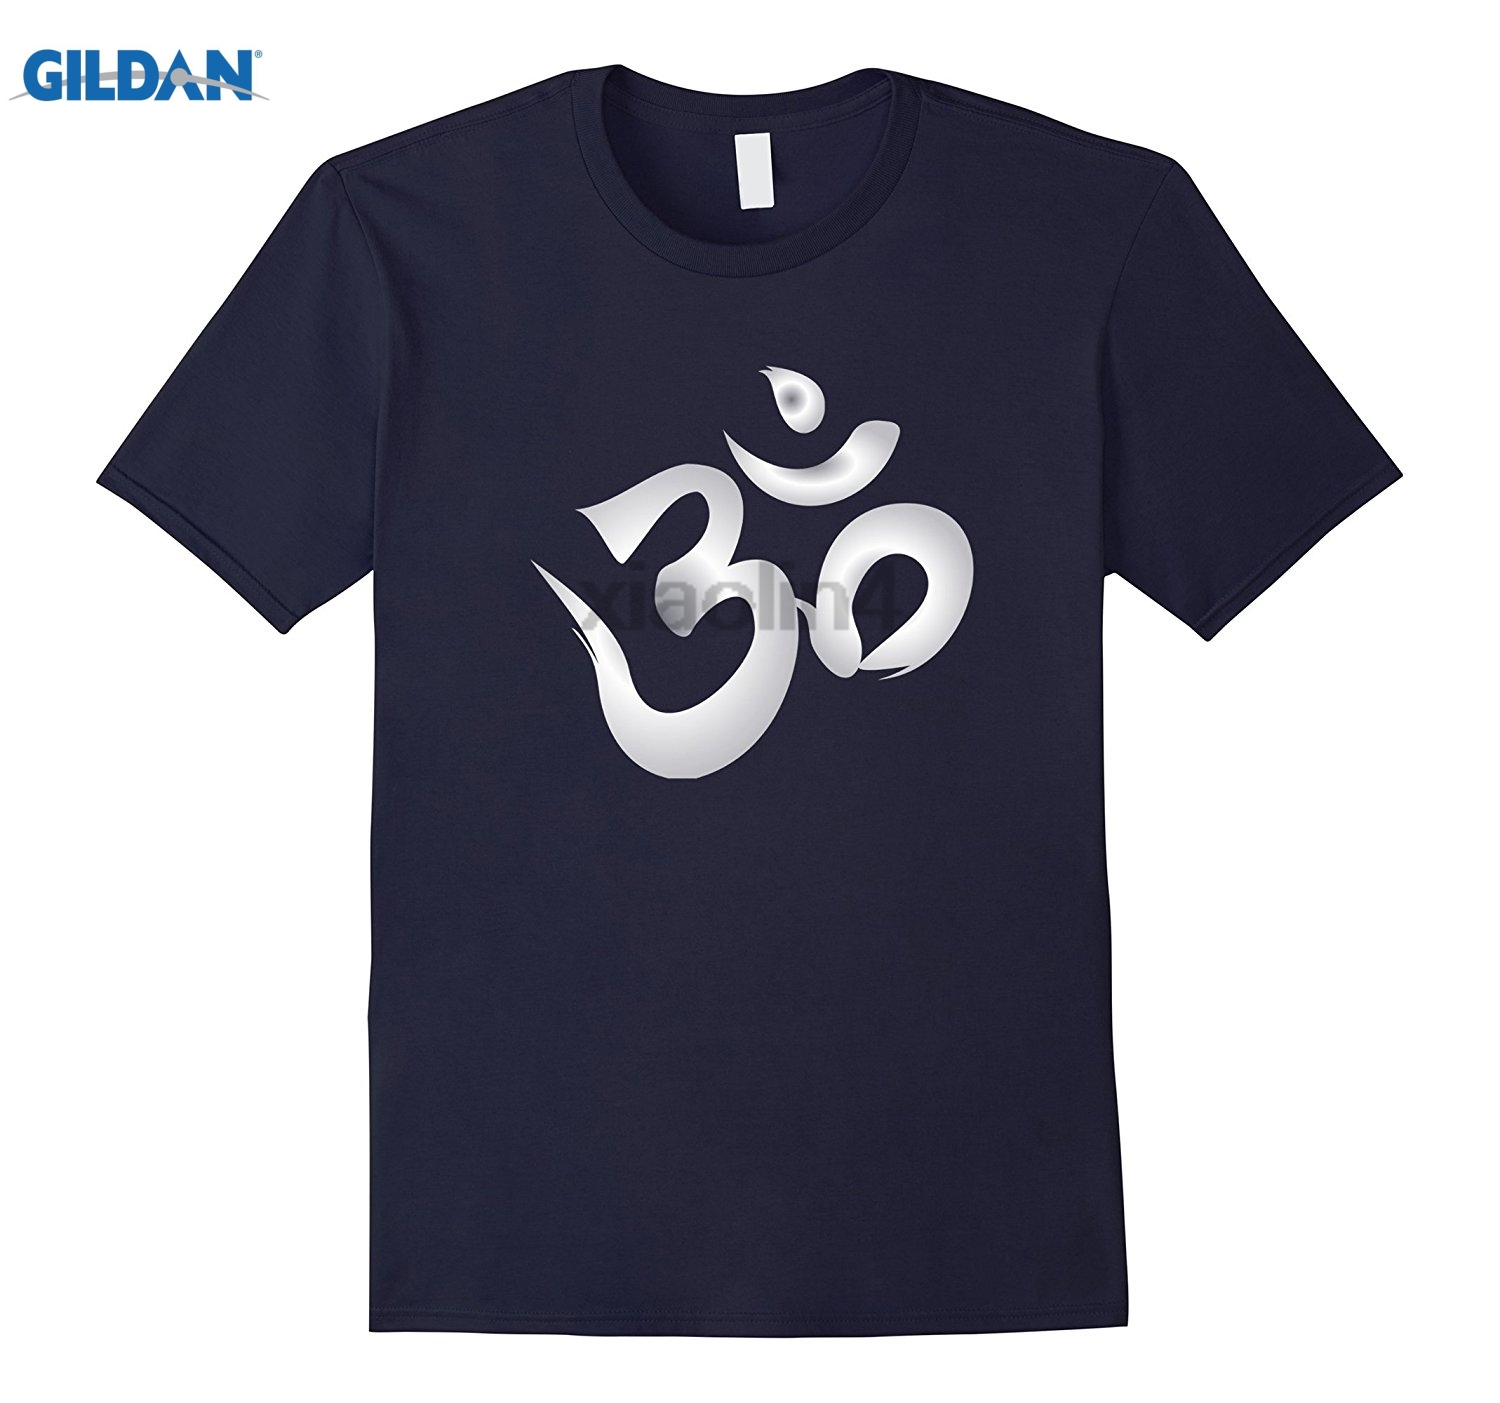 GILDAN T-Shirt spiritual ohm symbol in white (choice of colour) Gildan T-shirt Cotton Short Sleeve Top sunglasses women T-shirt